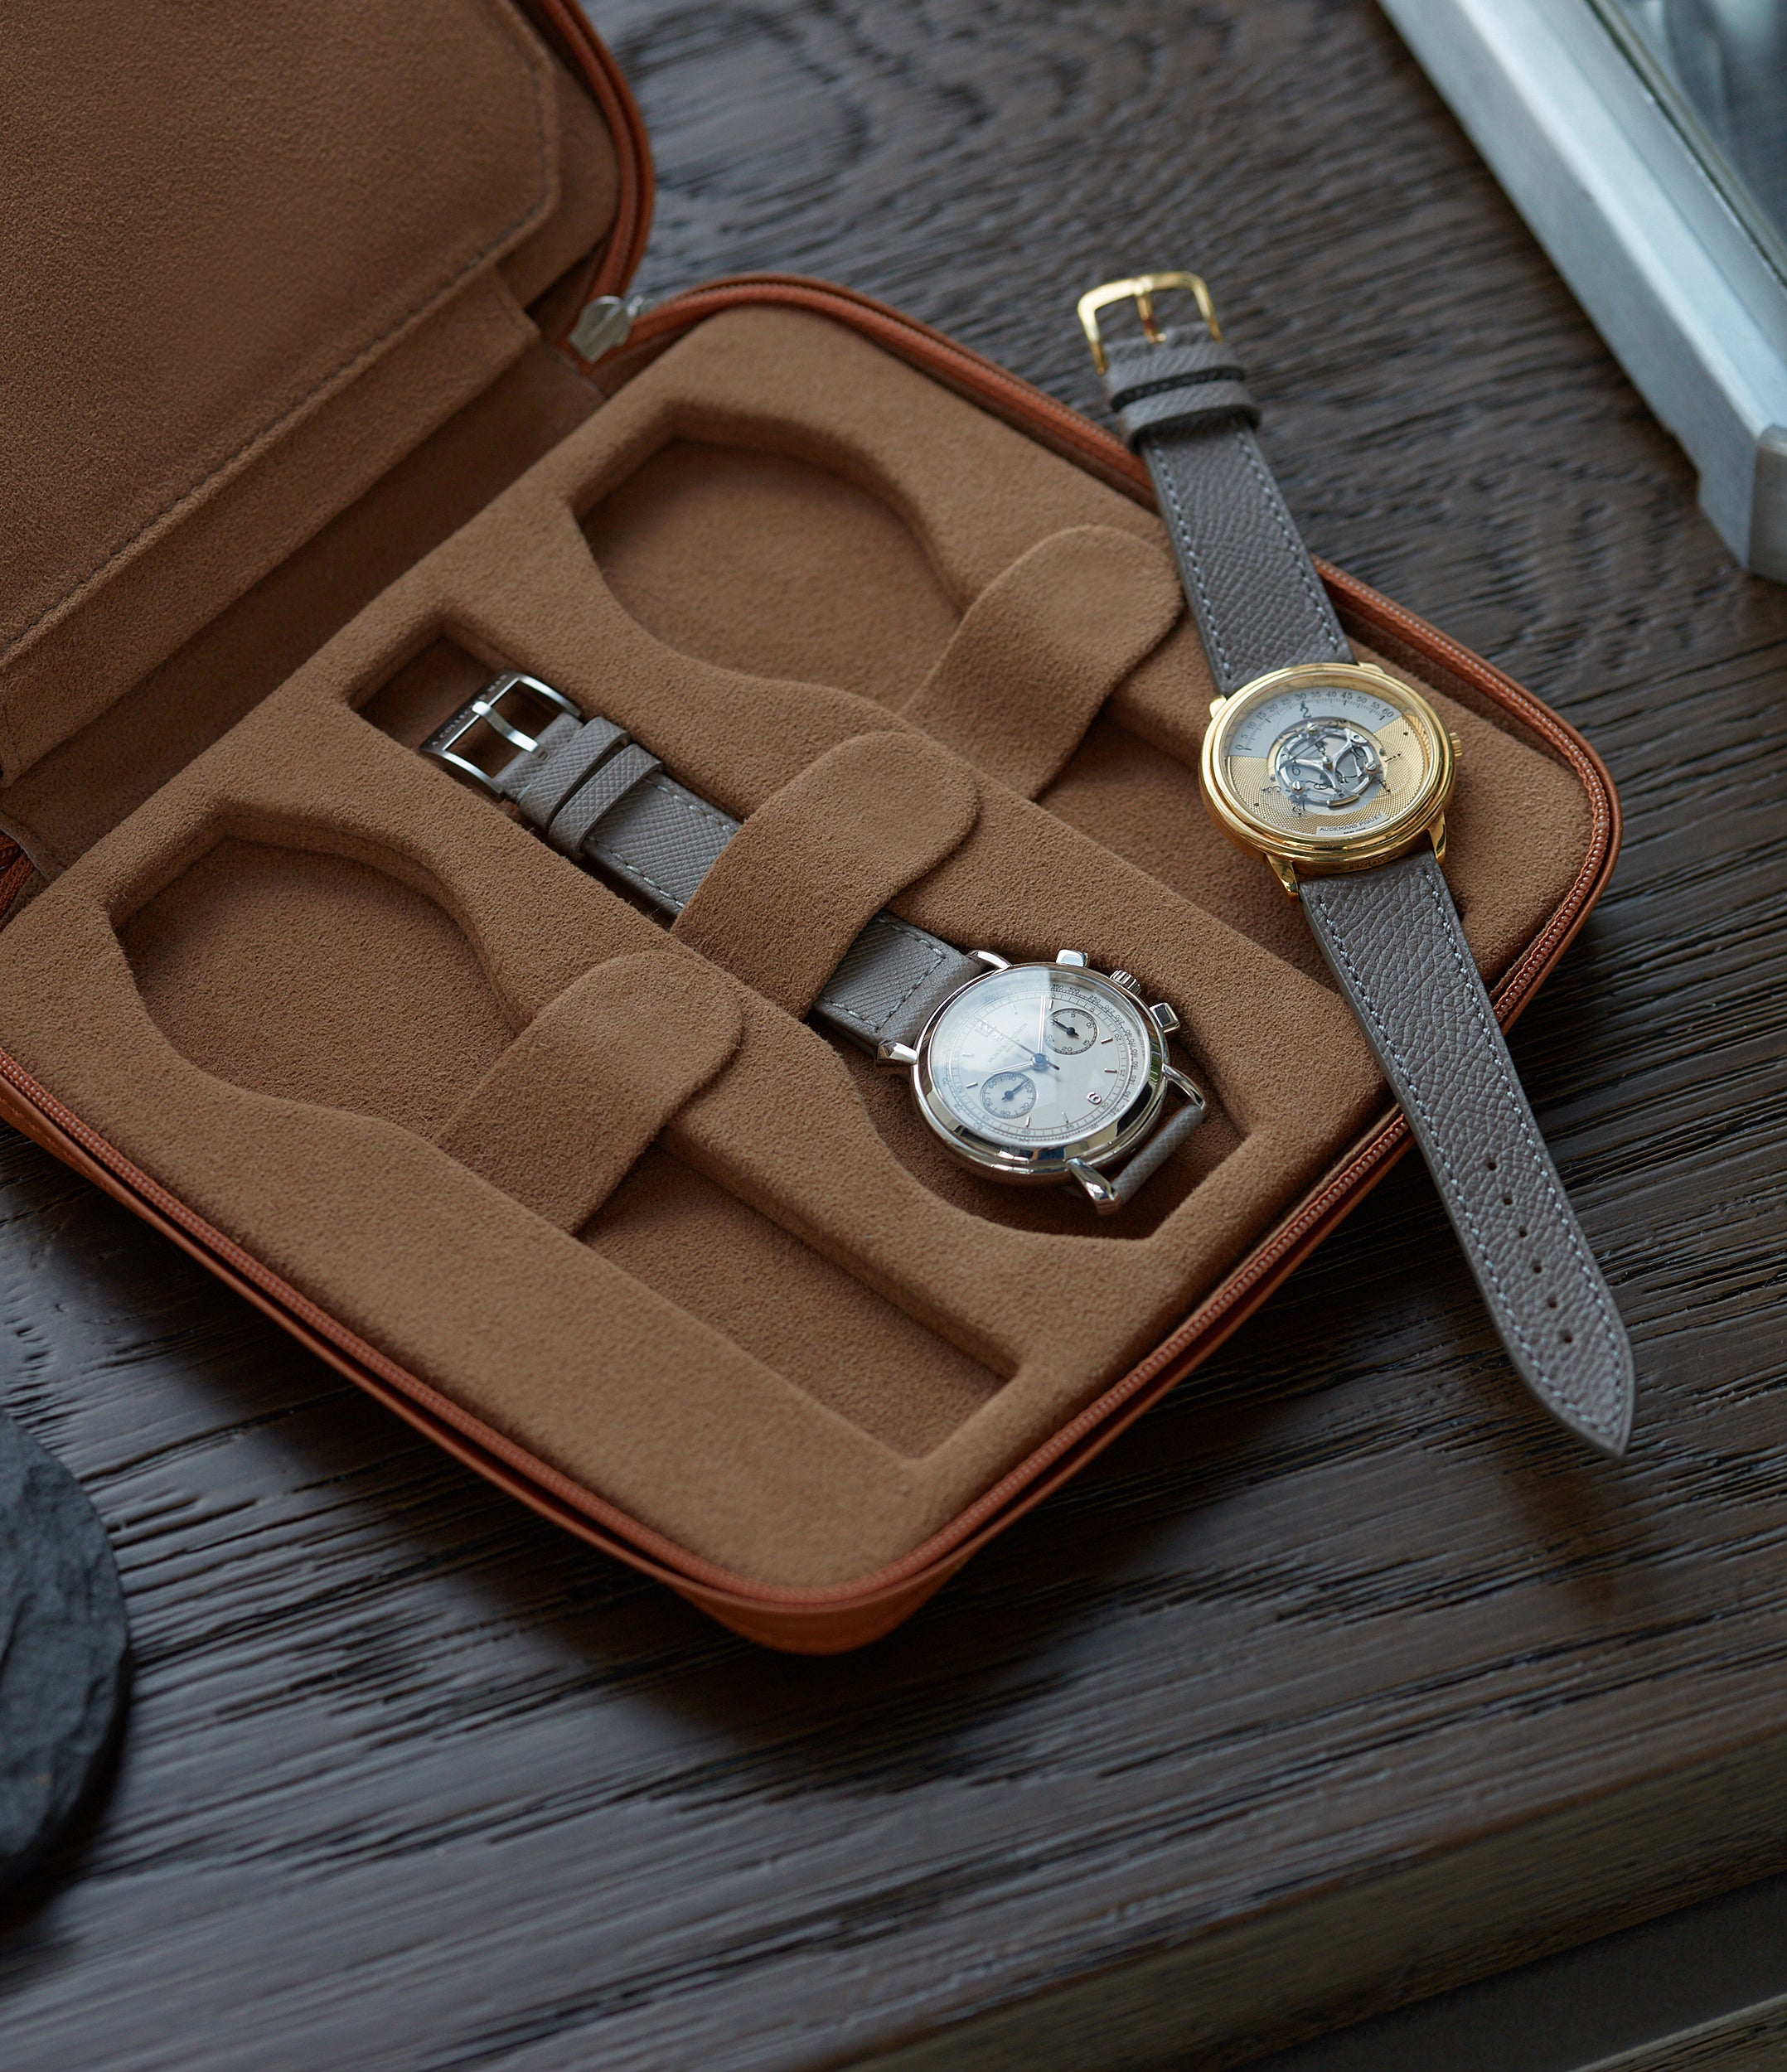 six-watch burnt orange leather Paris watch travel zip pouch holder 6 watches order online A Collected Man London